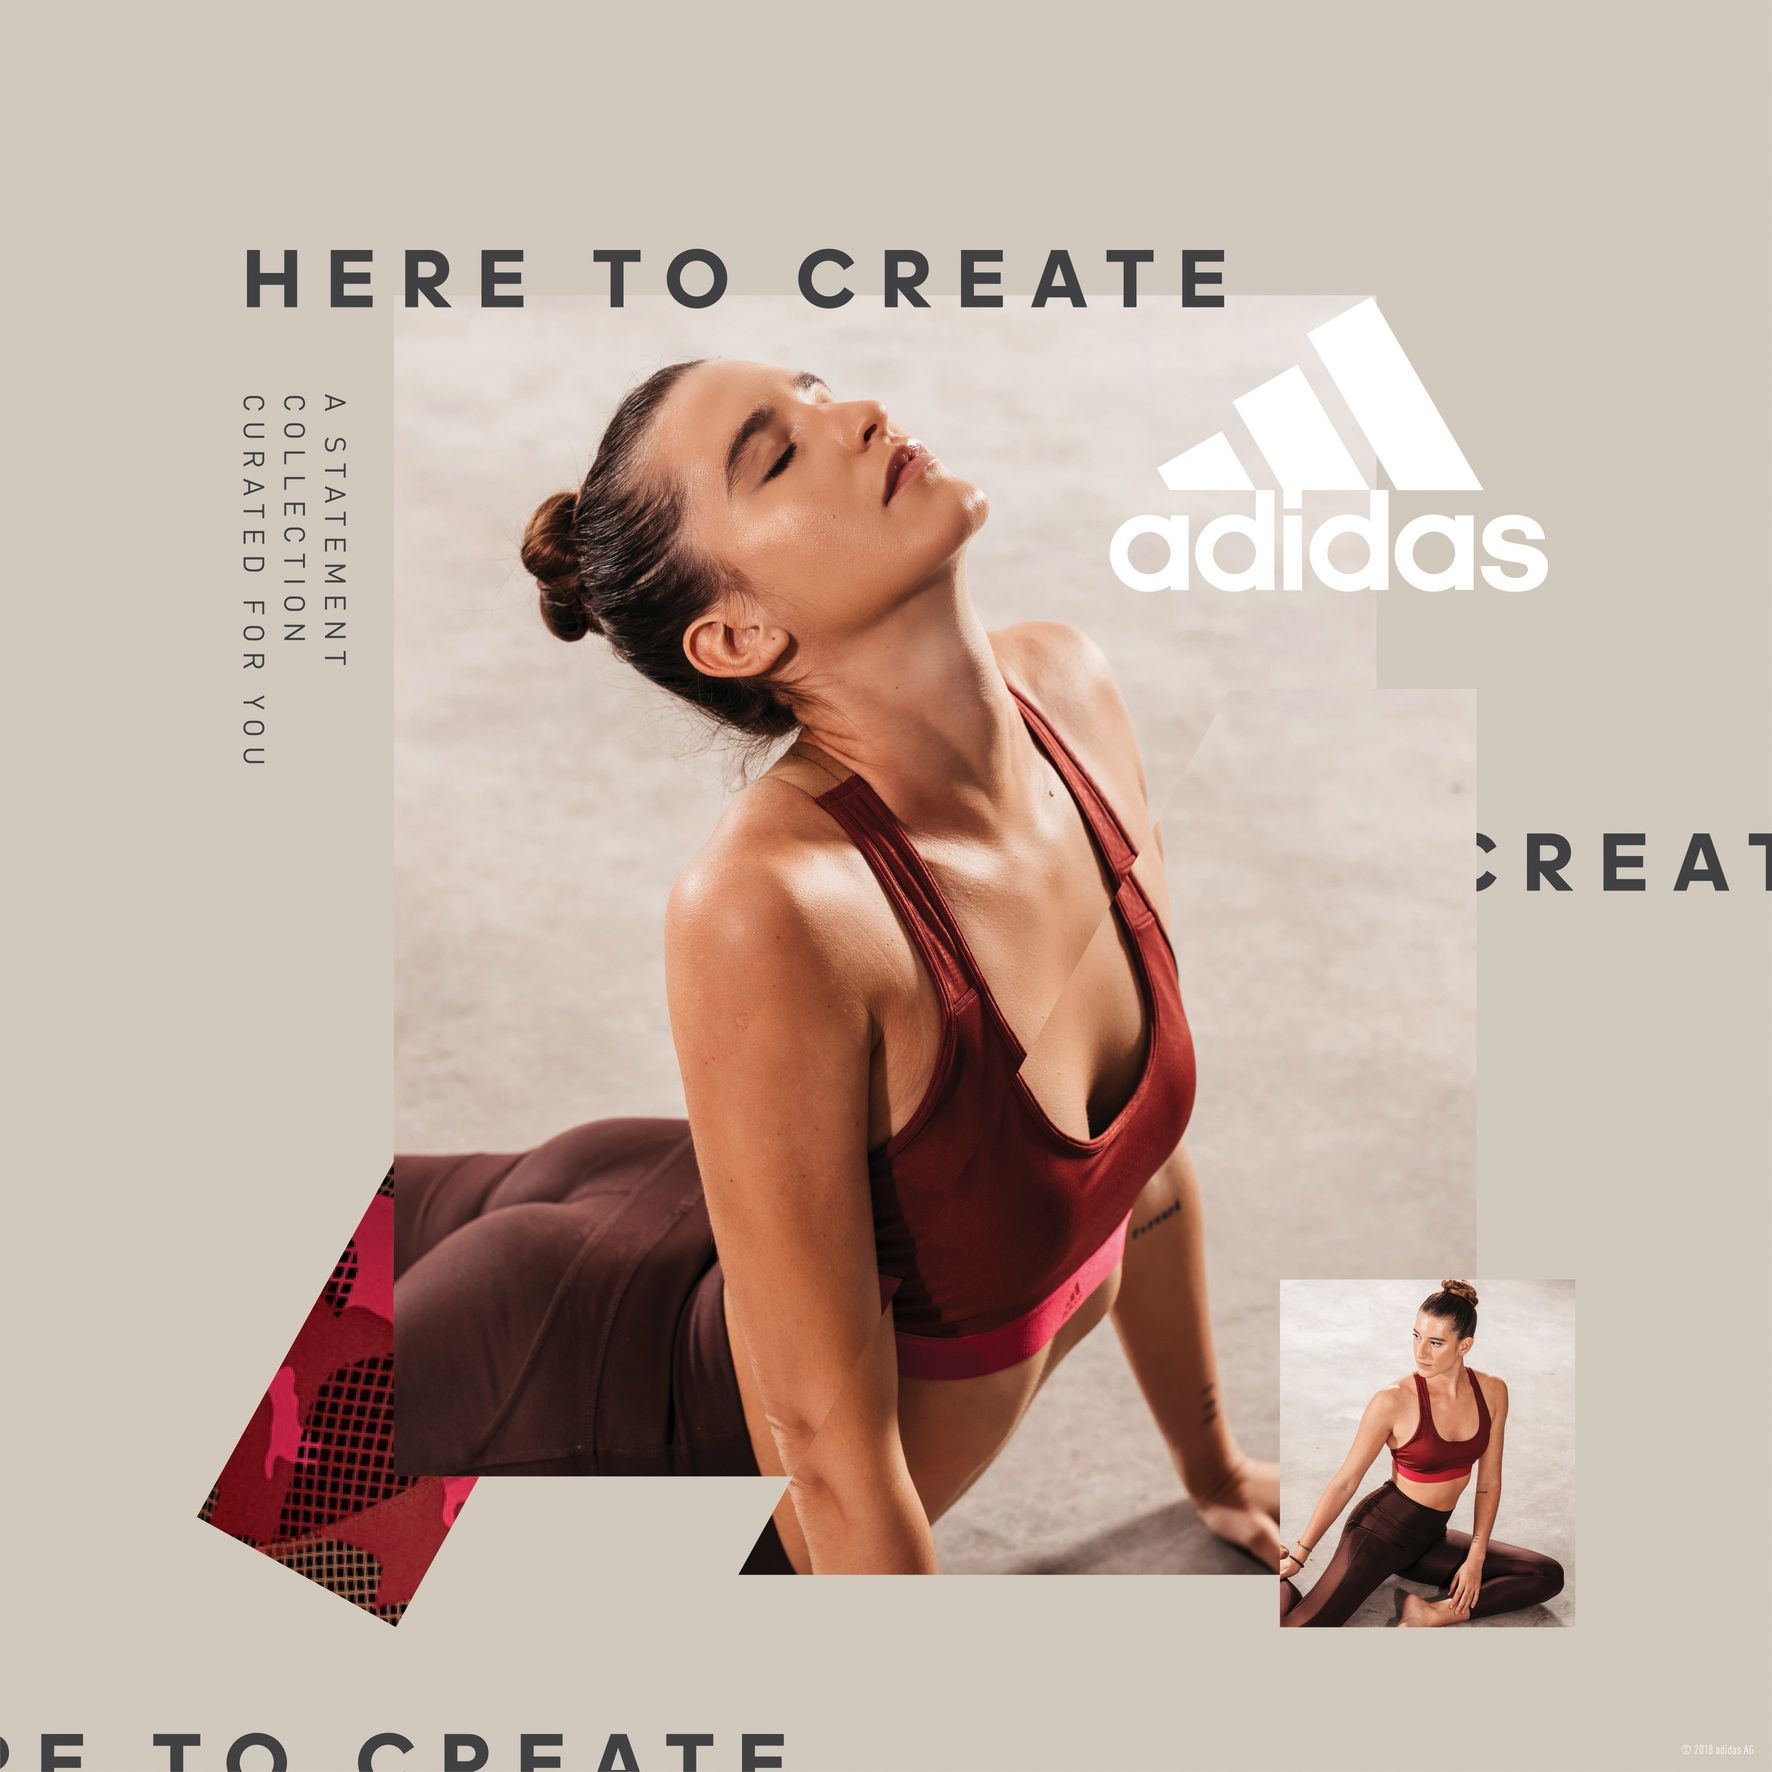 Adidas Women Statement Collection - Vivian Drakou